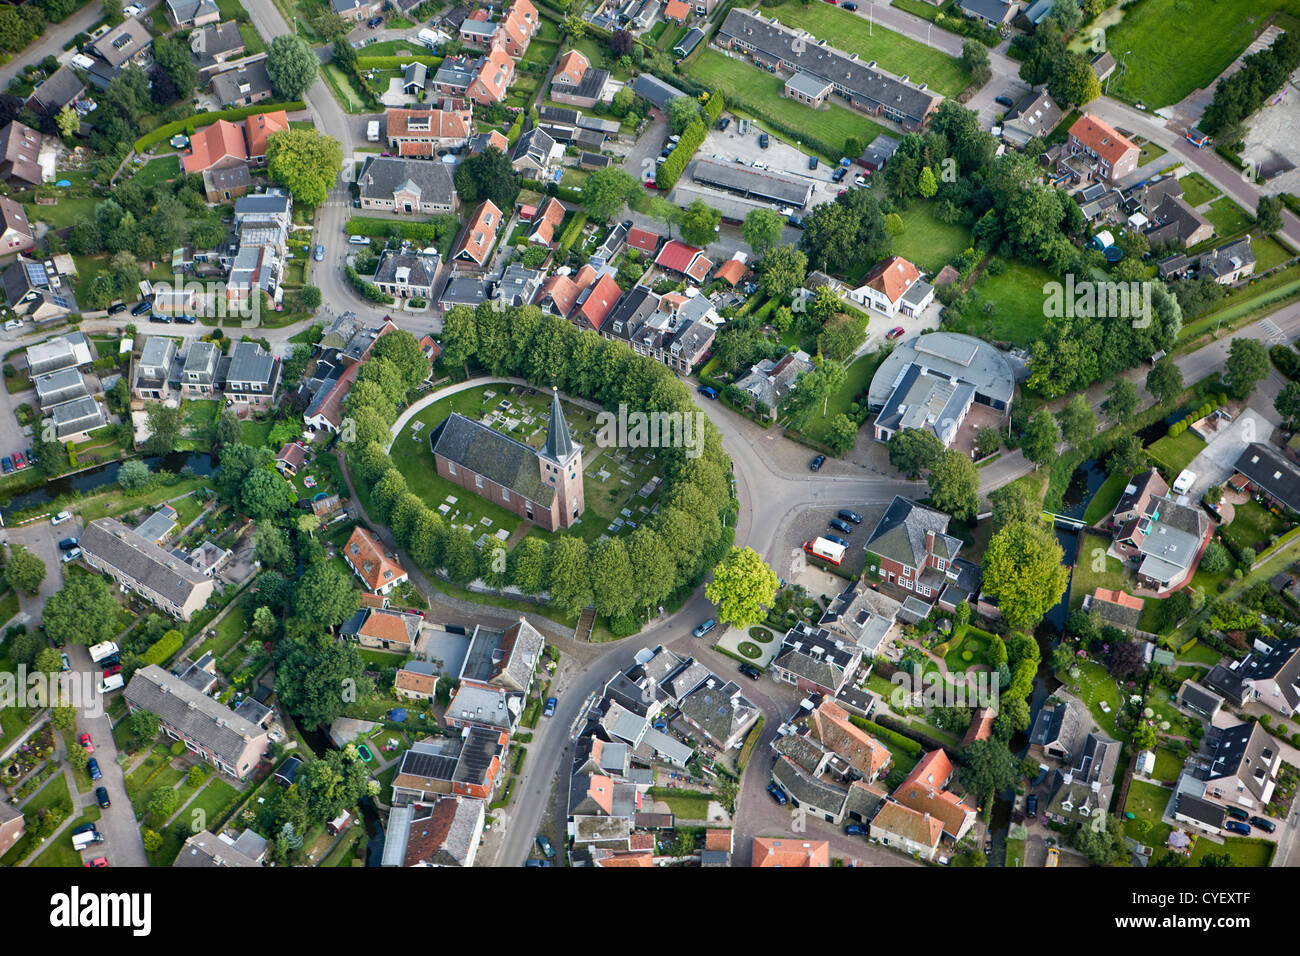 The Netherlands, Raerd, Aerial. Center of village with church on mount. Stock Photo